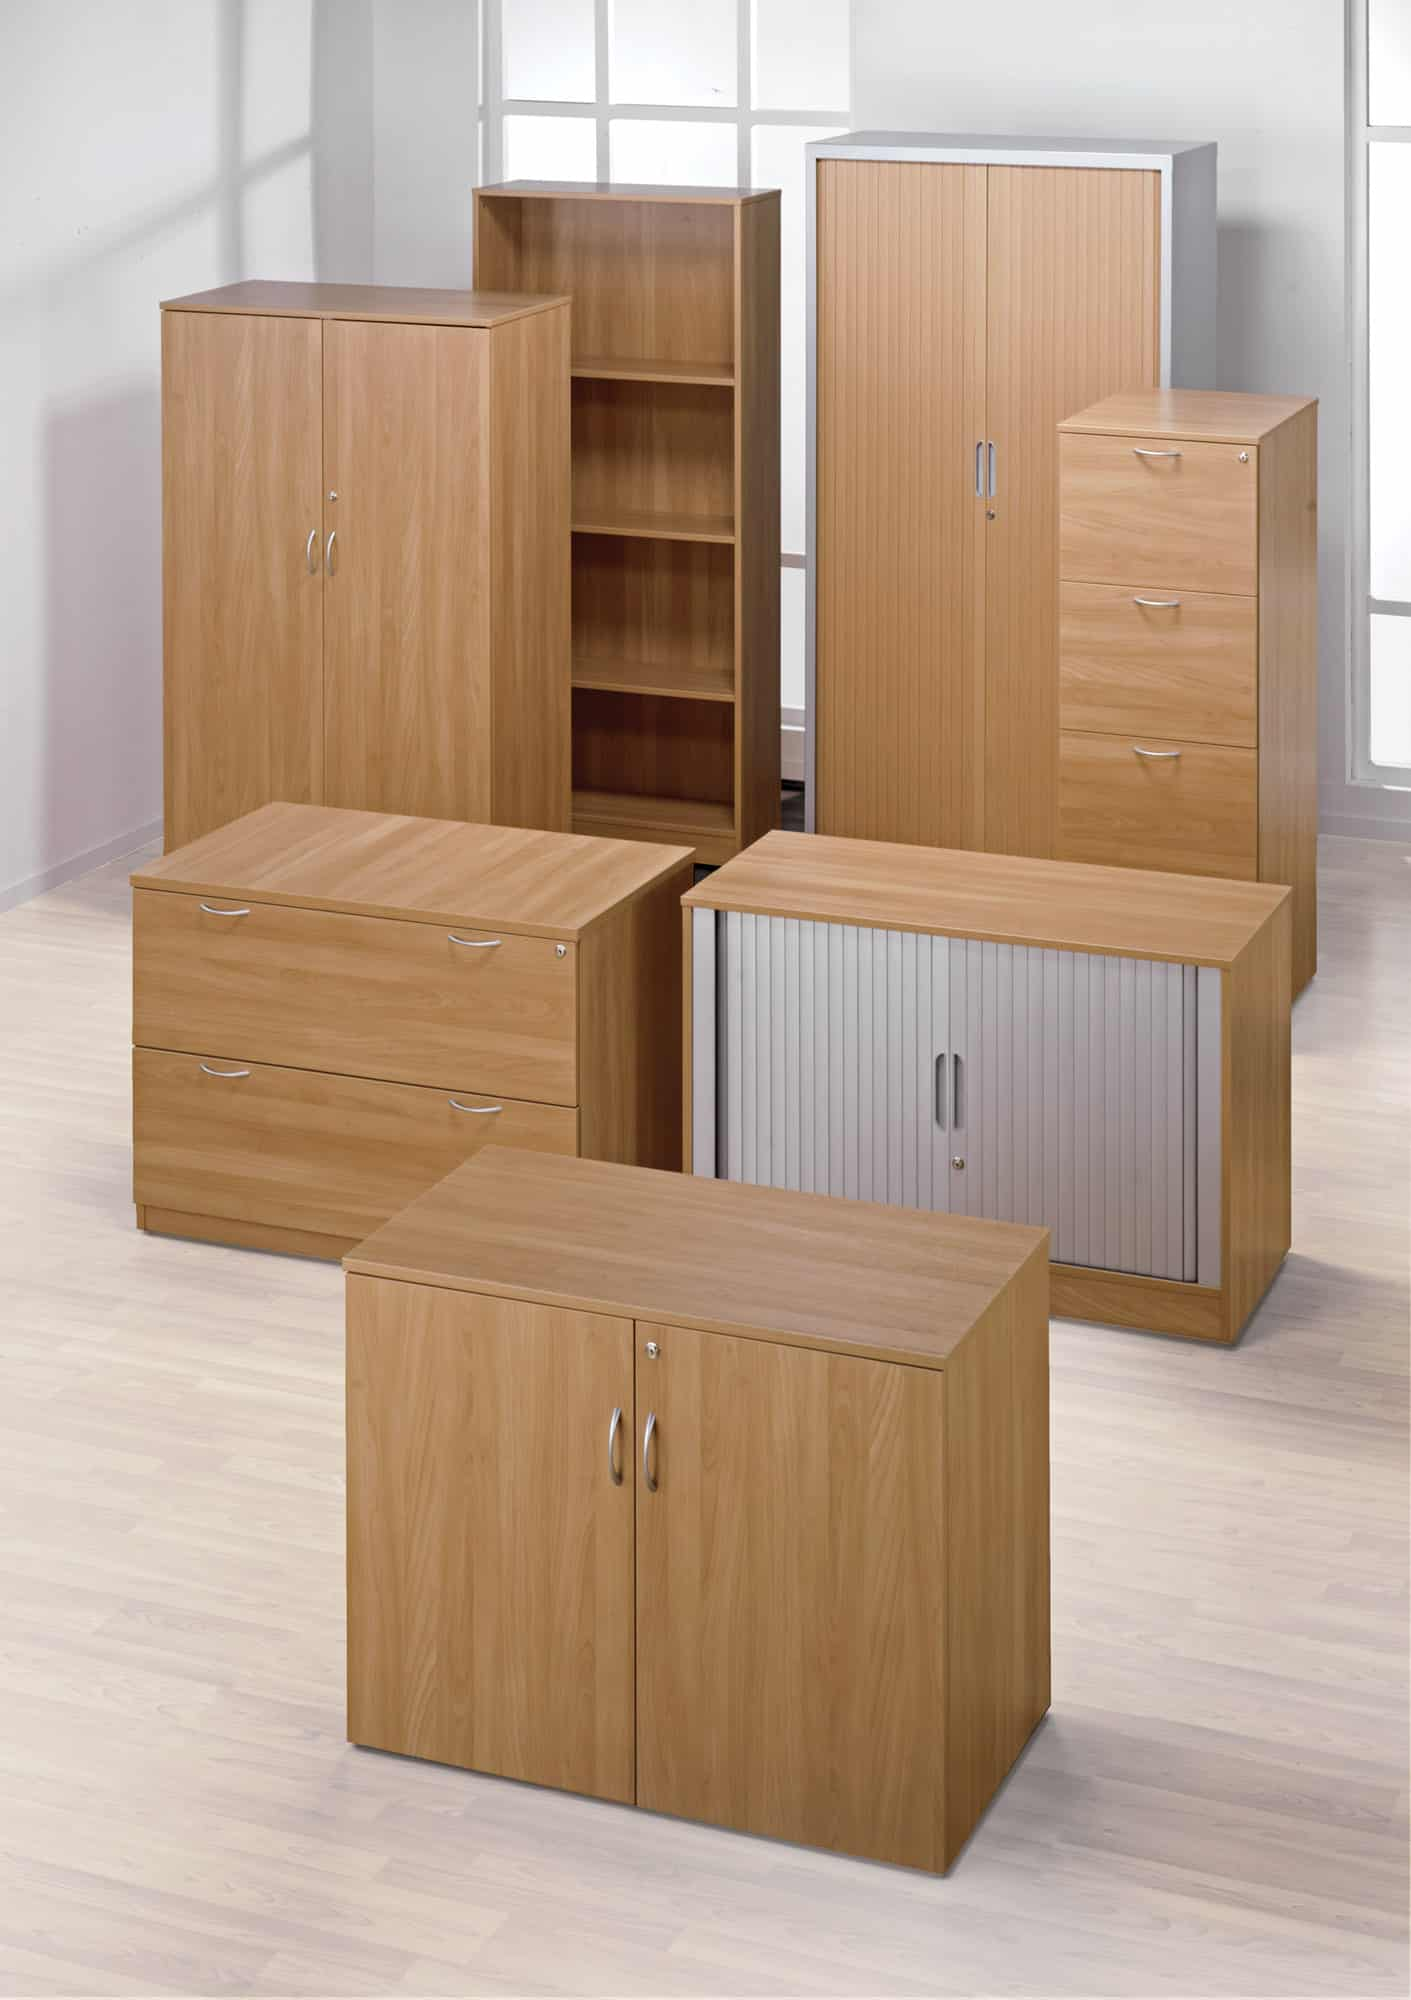 Lighter-floor-cupboards